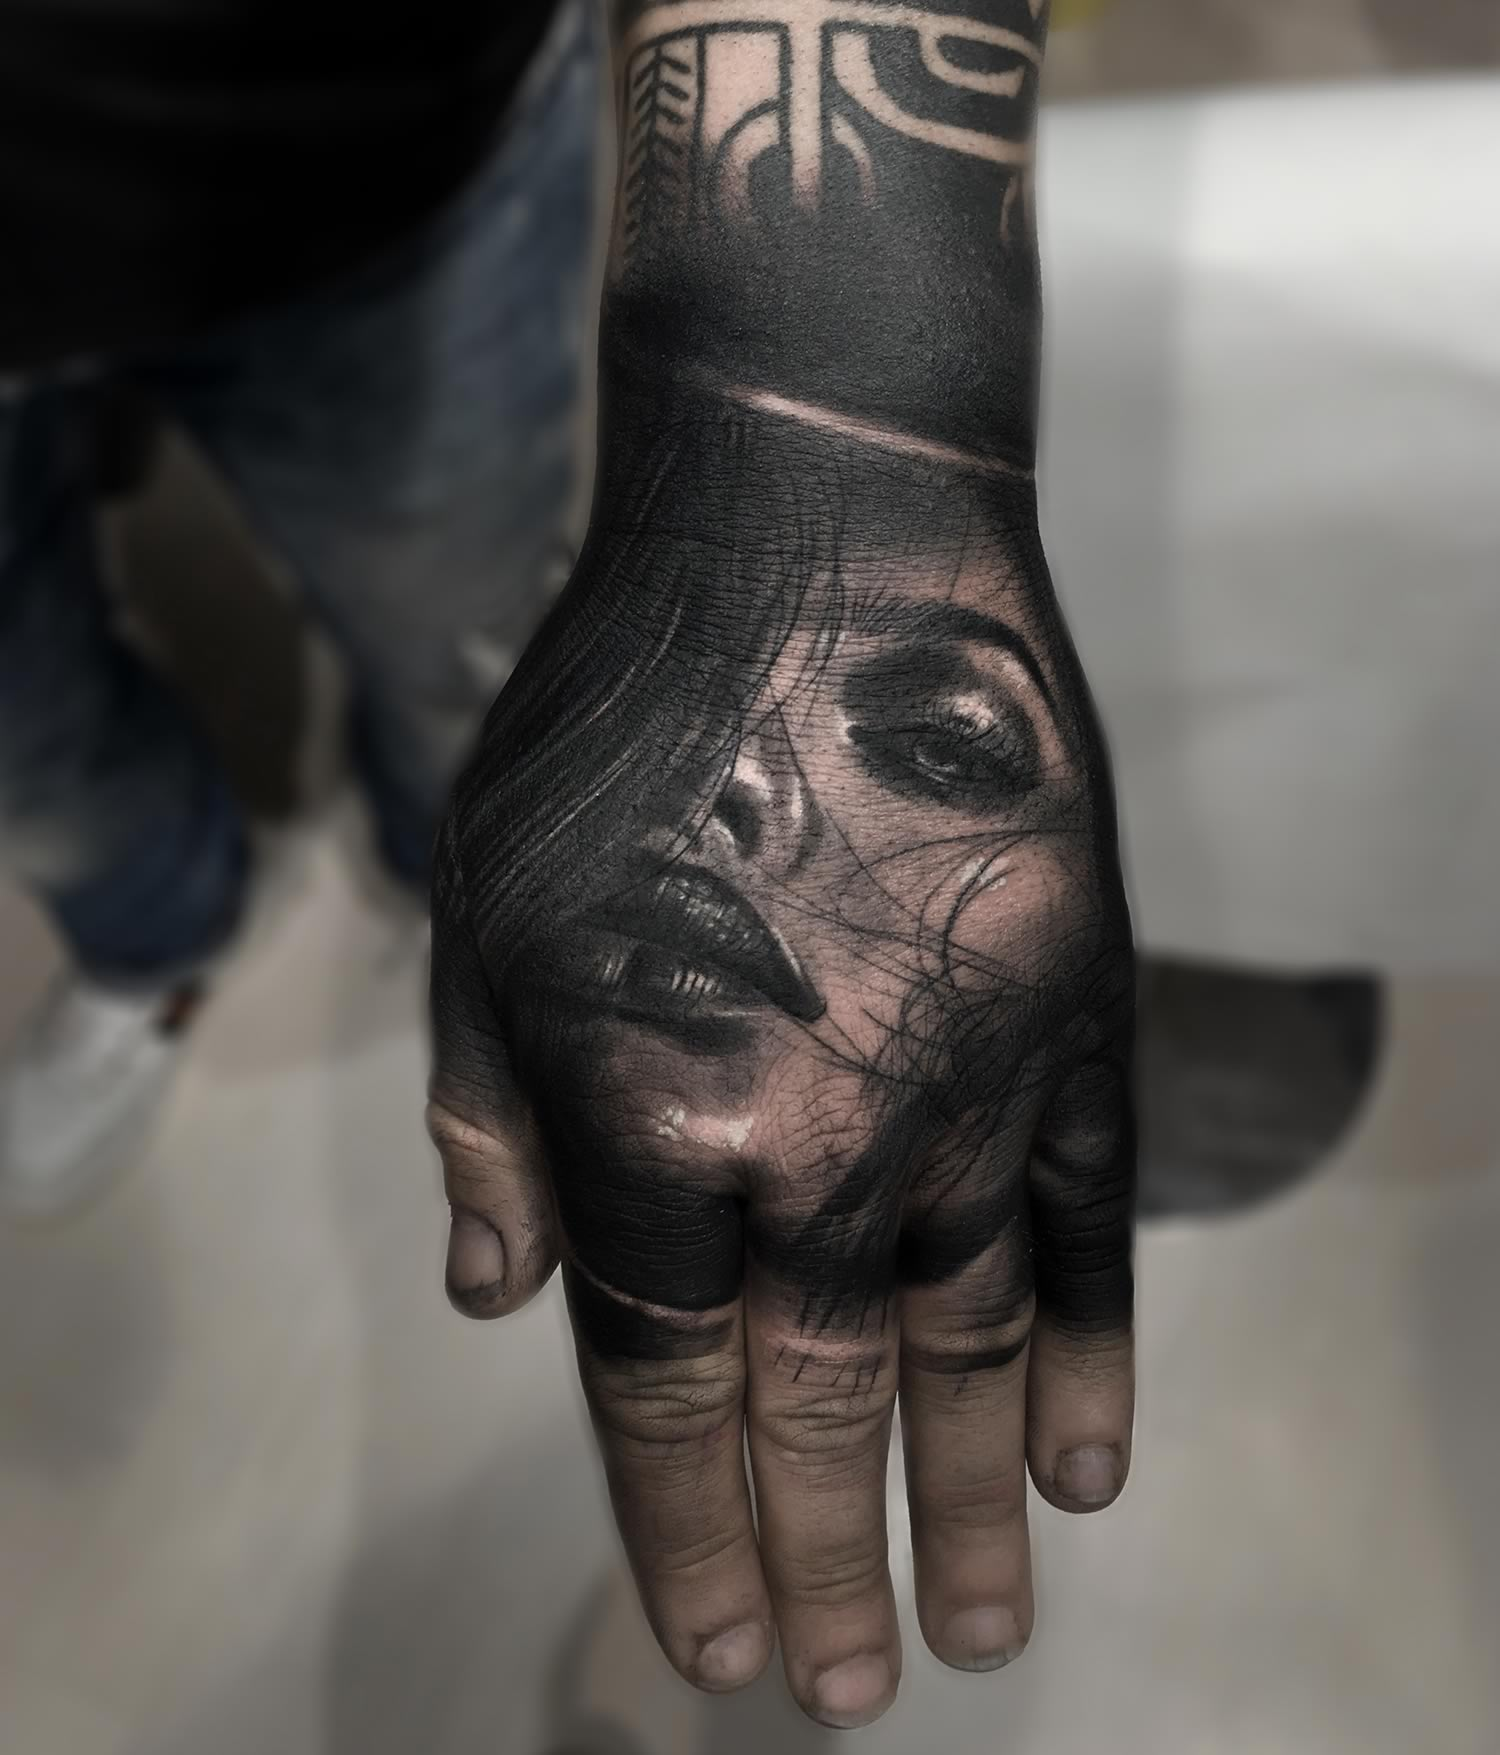 woman portrait tattooed on hand. hand tattoo